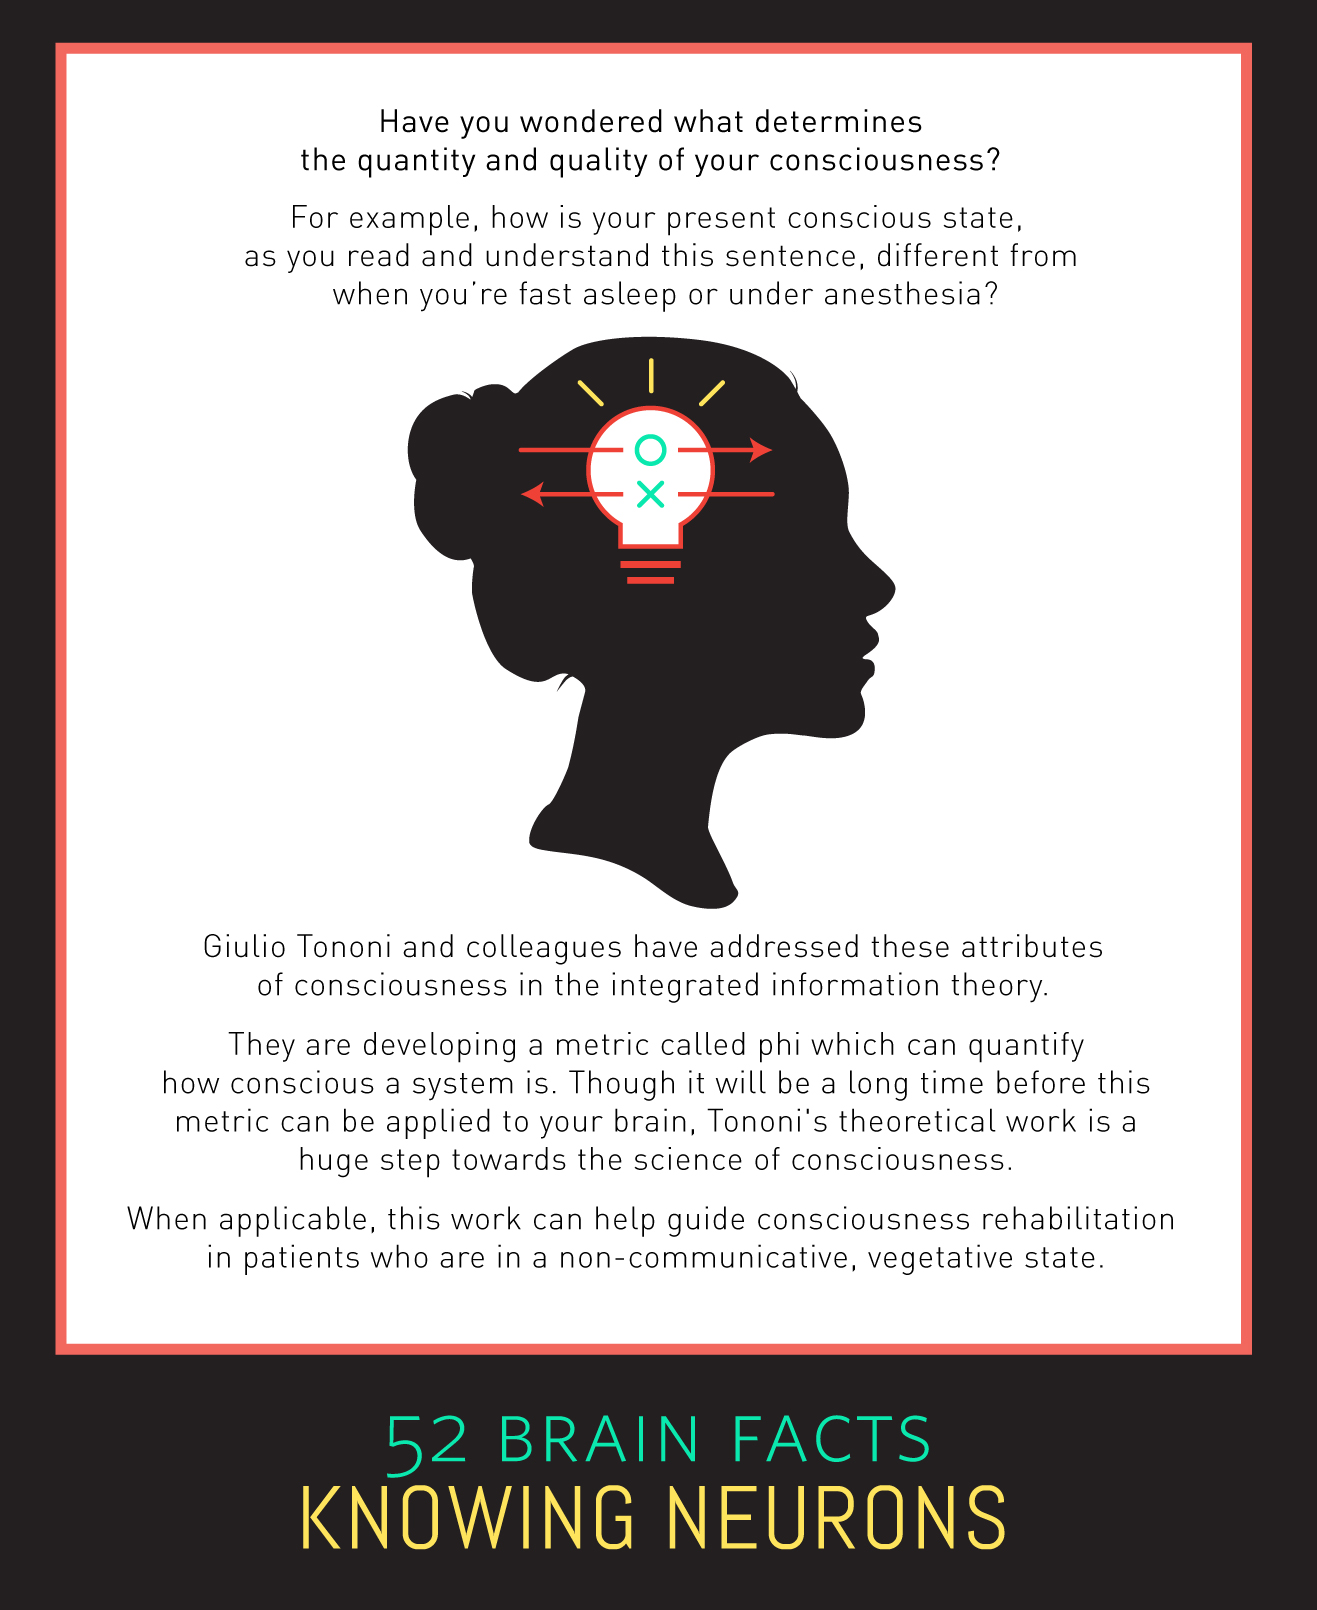 Myth or Fact? A single number can soon quantify your level of consciousness.